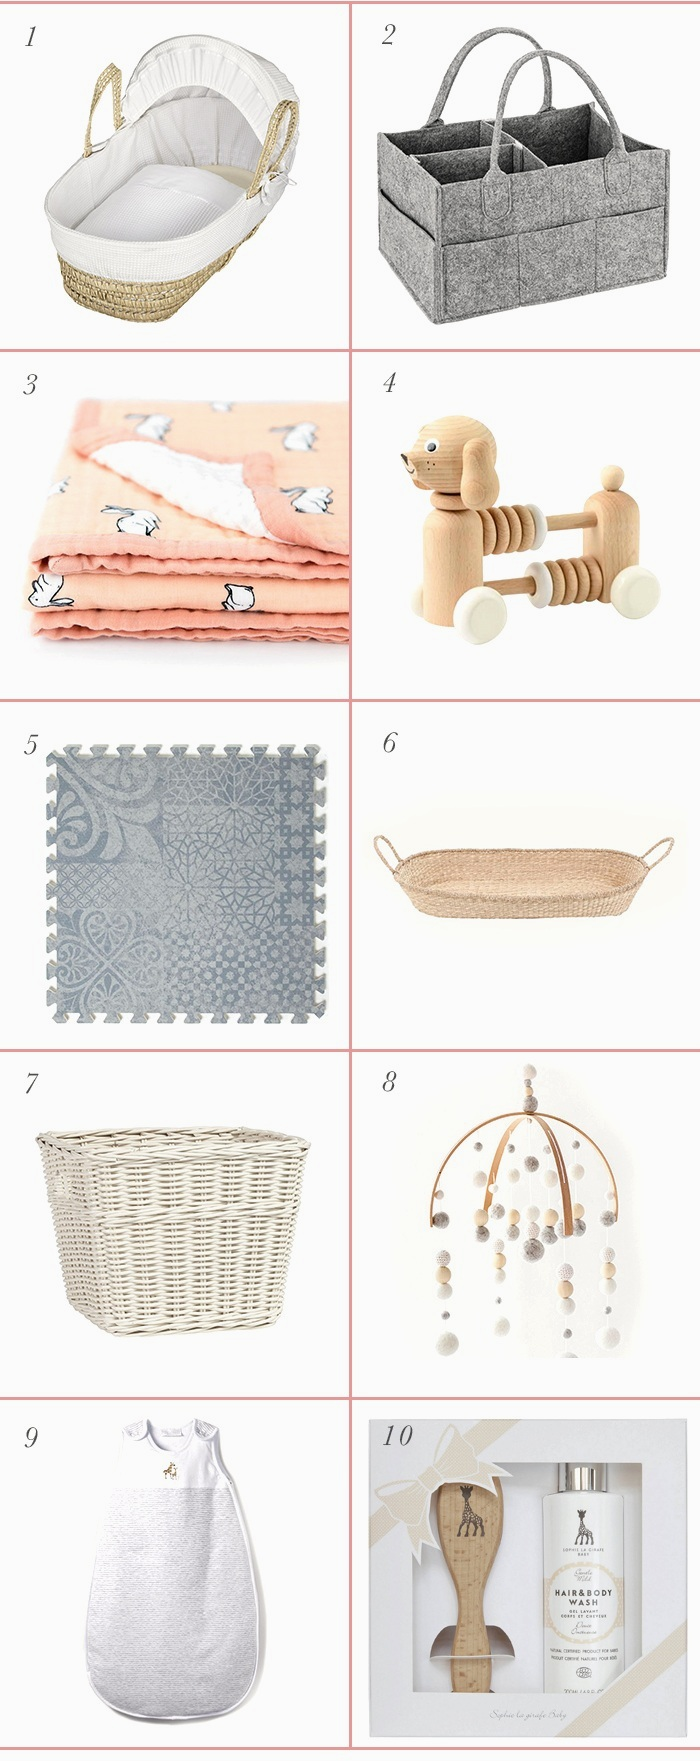 Baby-Essentials-small-space-home-nesury-interio-styling-stylist-nancy-straughan.jpg